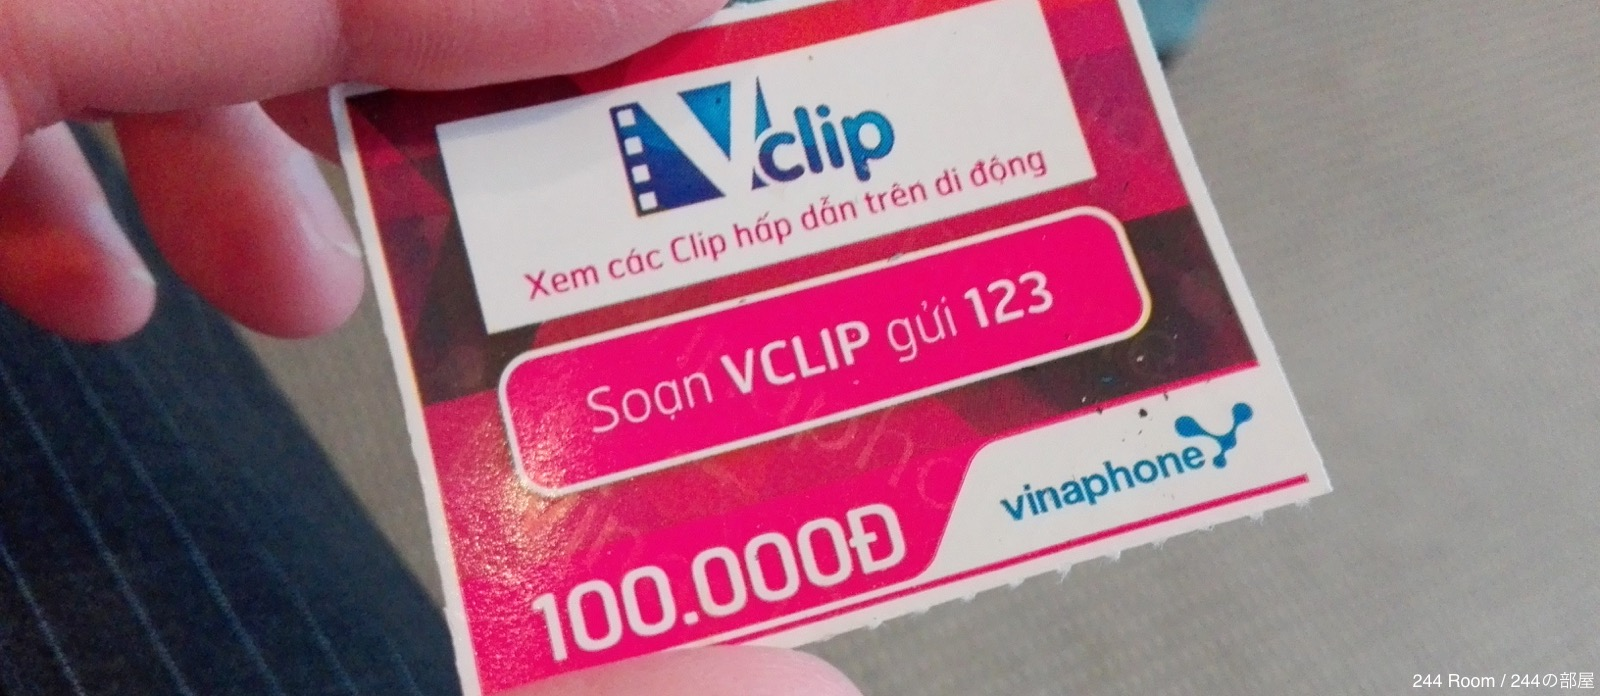 Vinaphone top up card